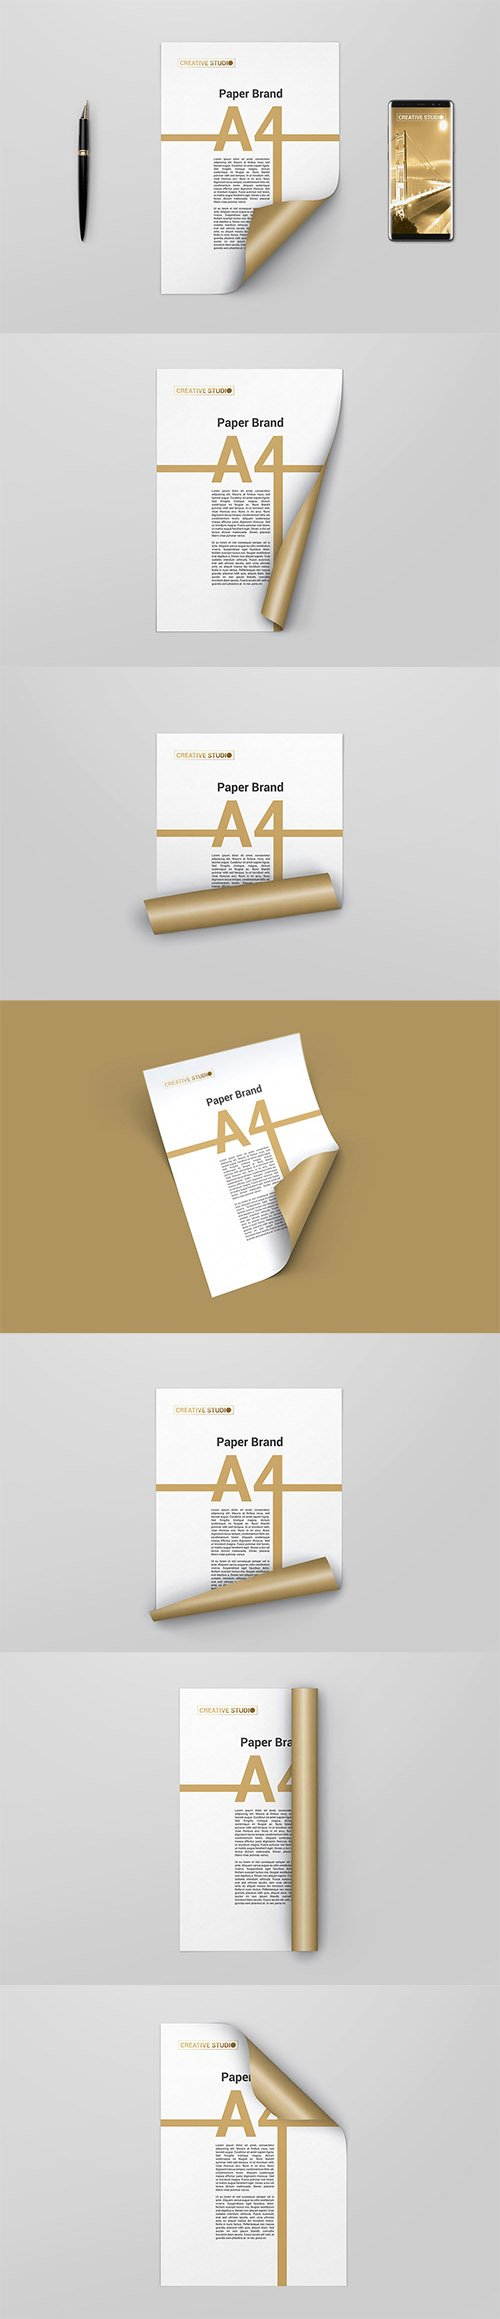 A4 Curled Paper Mockups